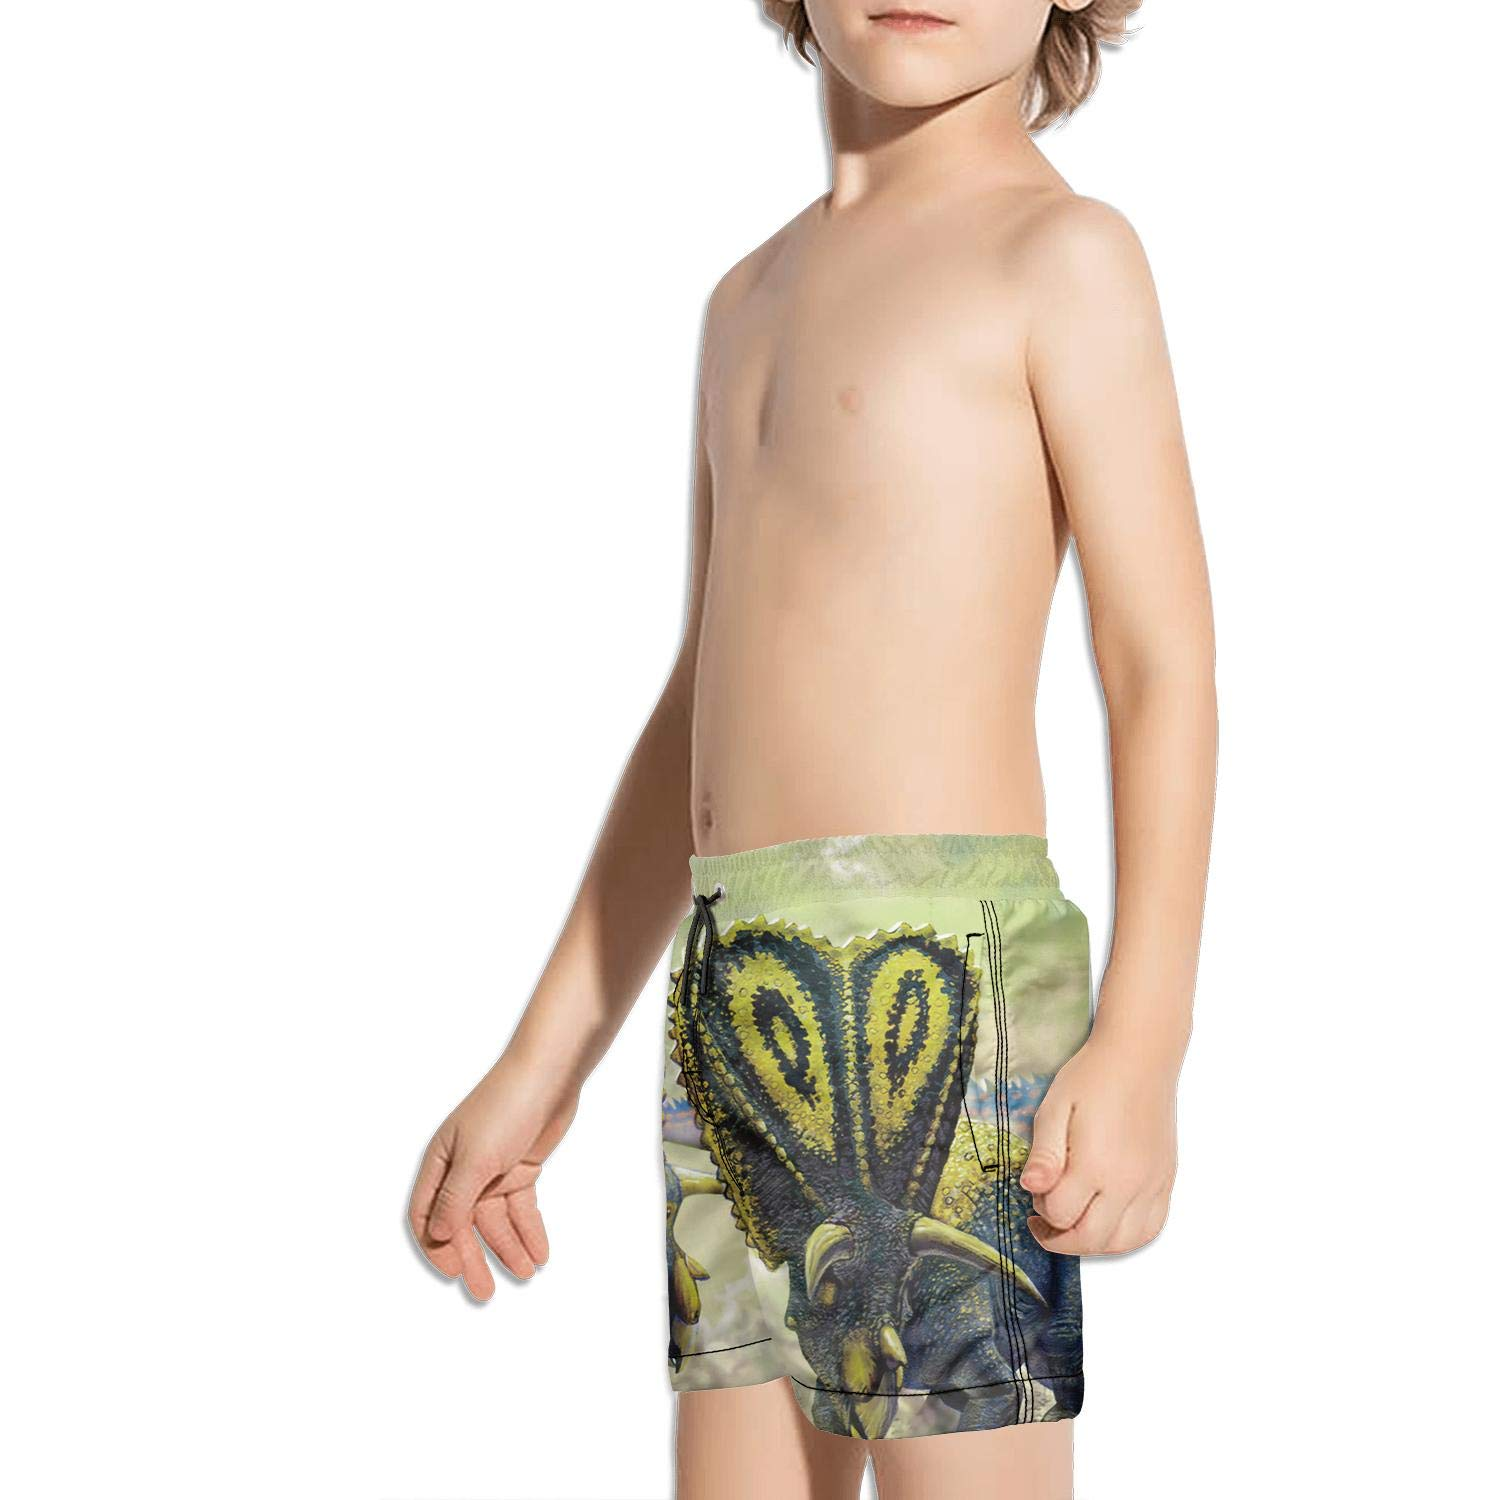 HONGMING Boys Swim Trunk Colorful Band Color Guard Quick Dry Beach Board Shorts